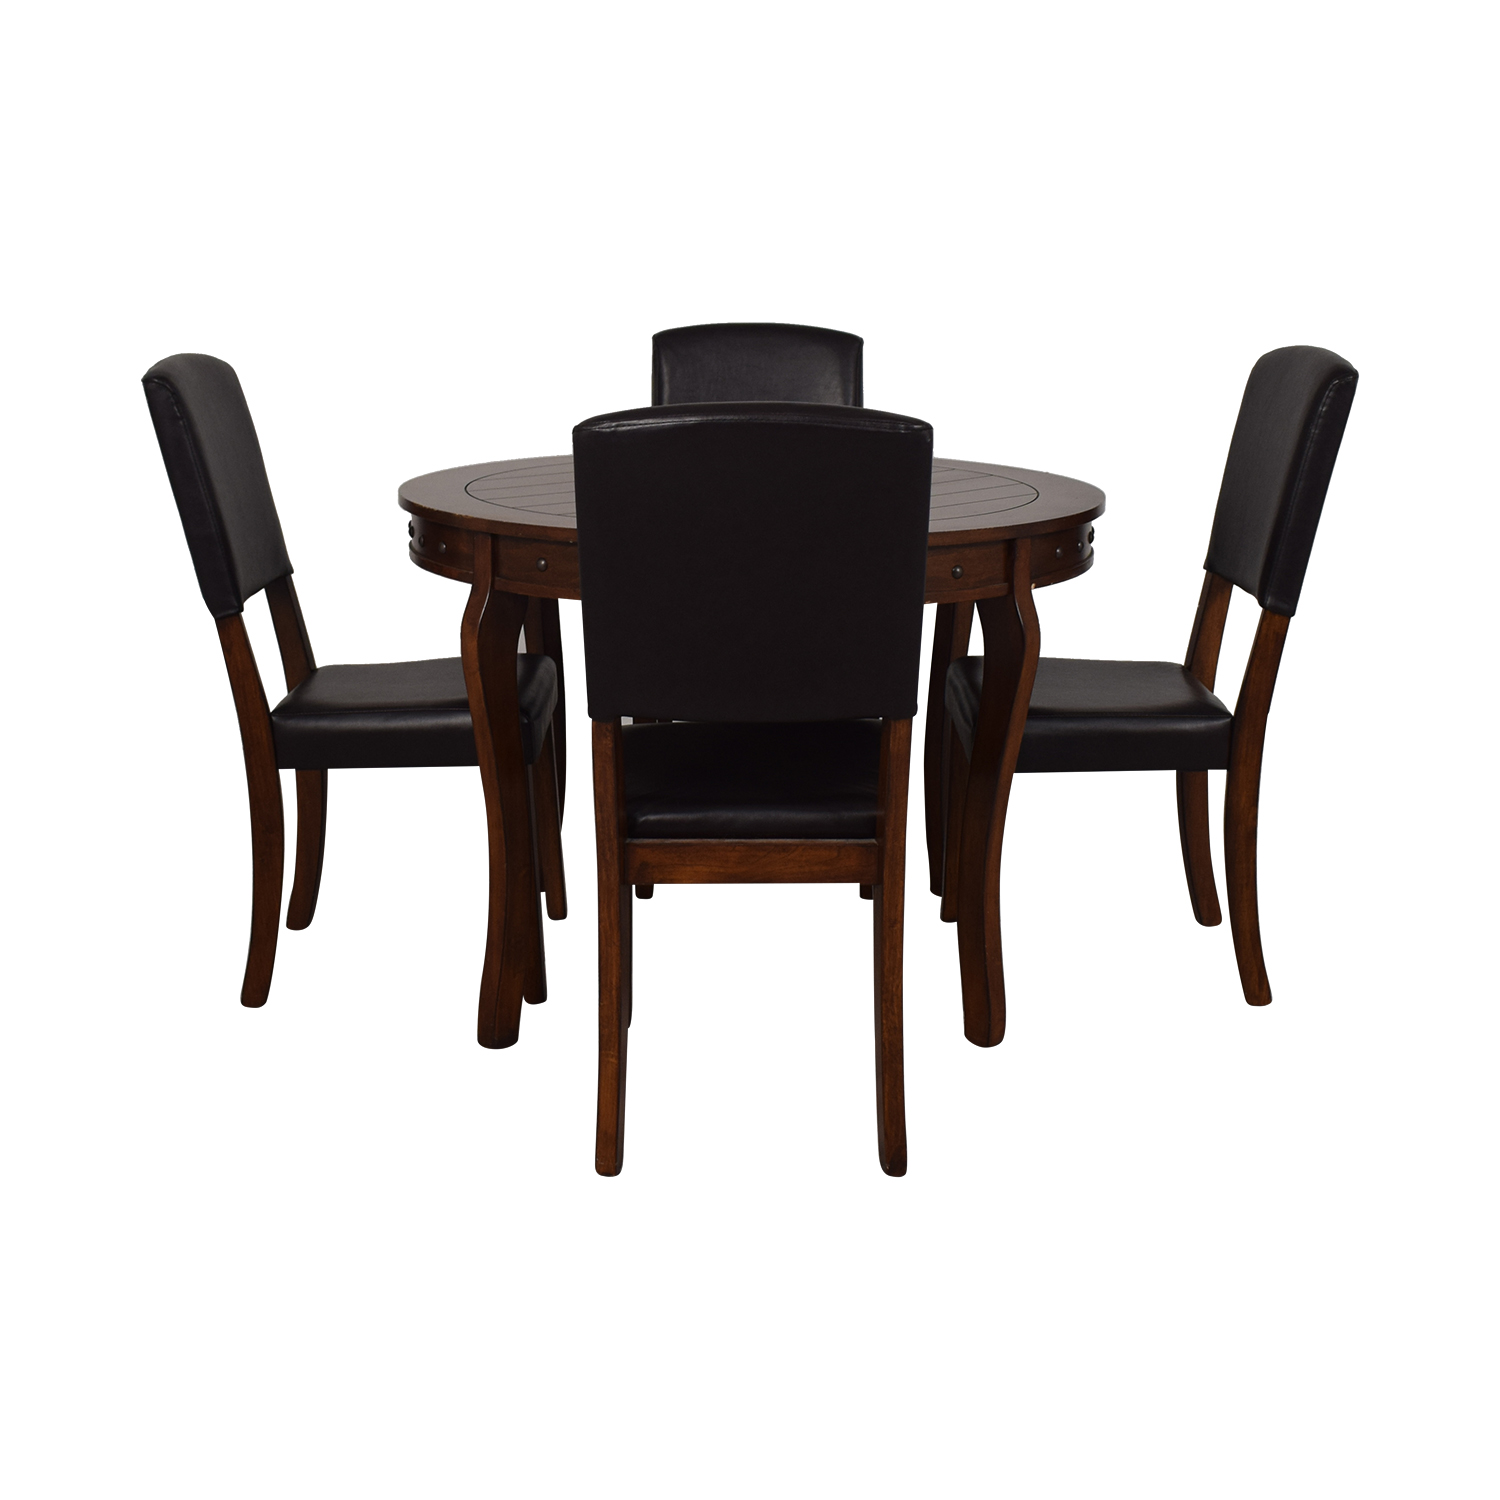 Ashley Furniture Ashley Furniture Round Dining Table with Chairs Tables